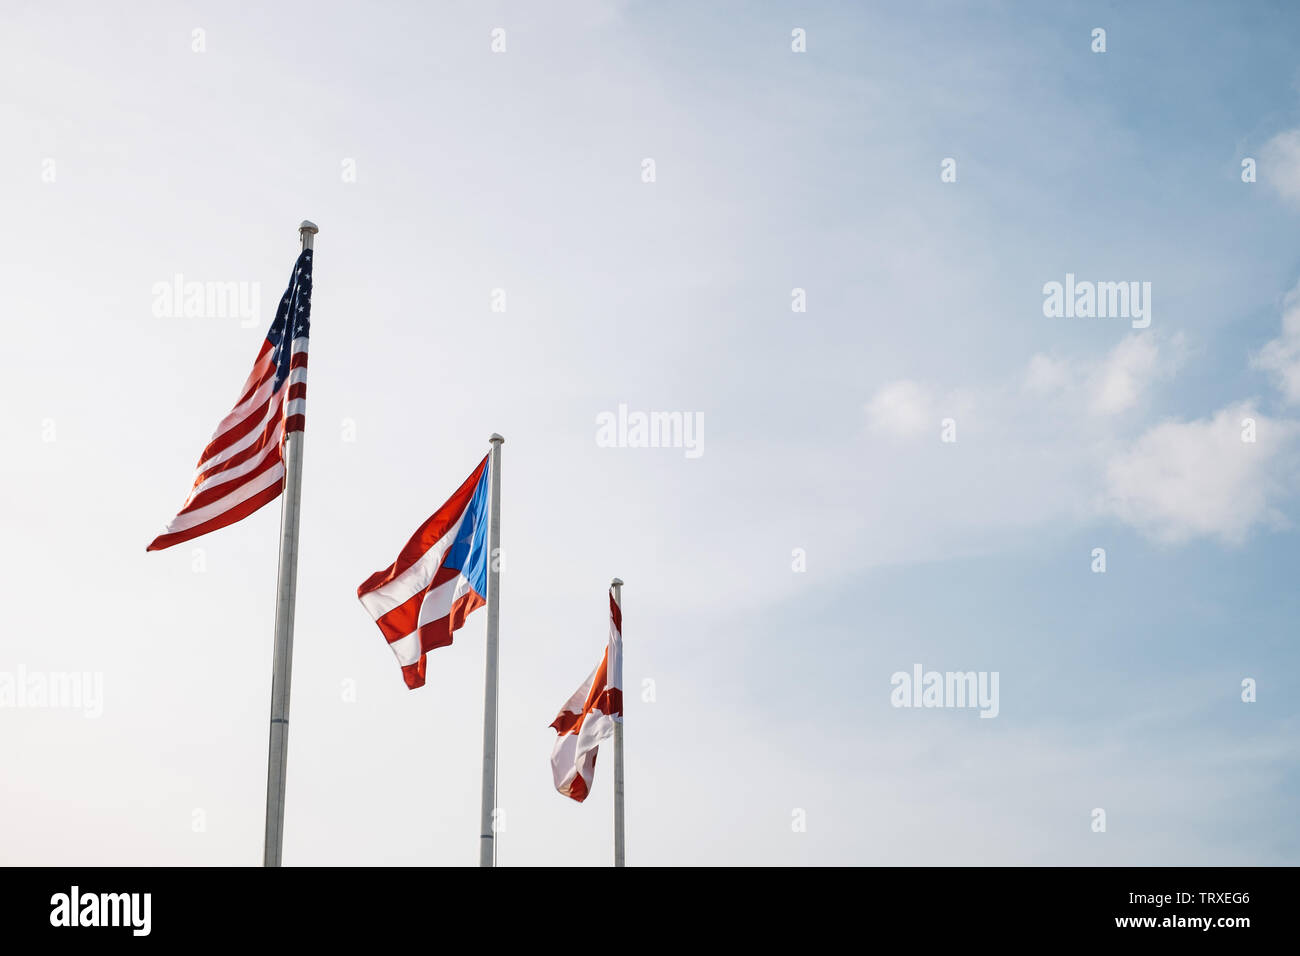 United States, Puerto Rico, and San Juan flags fly together above San Juan at sunset in Puerto Rico - Stock Image